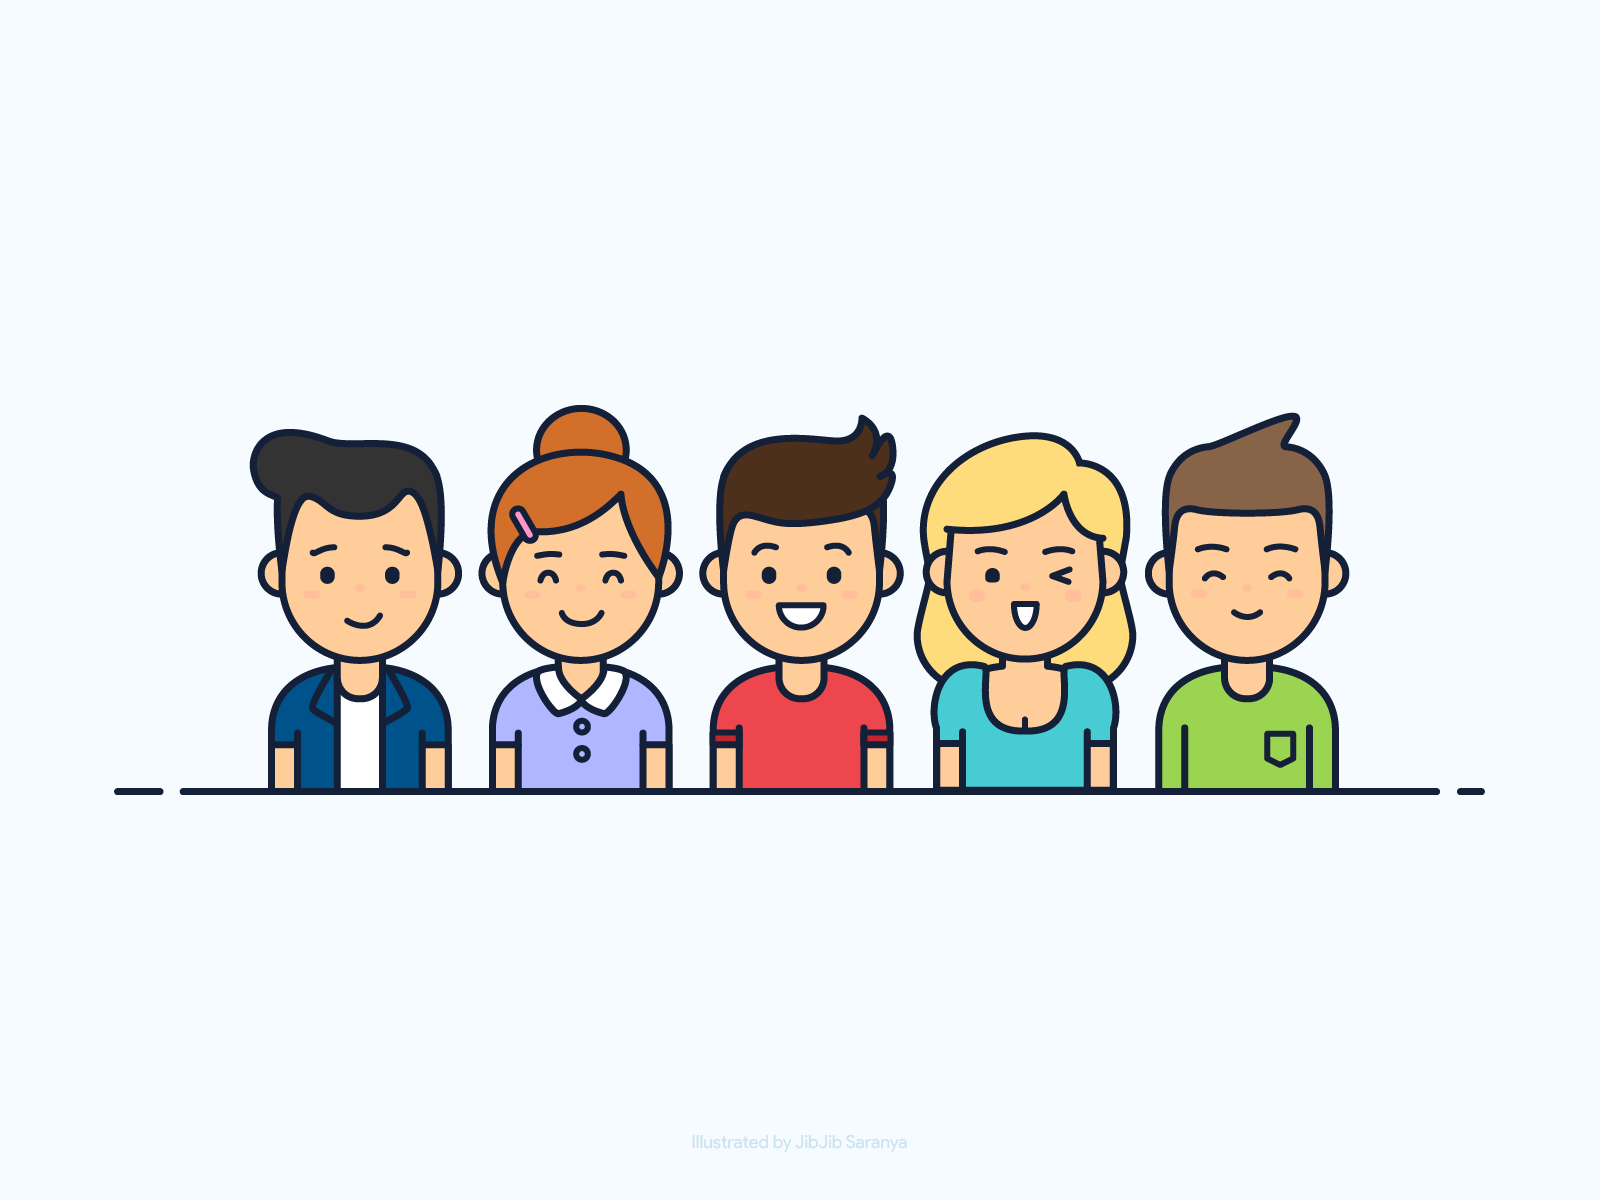 cute characters character avatars icons dribbble profile